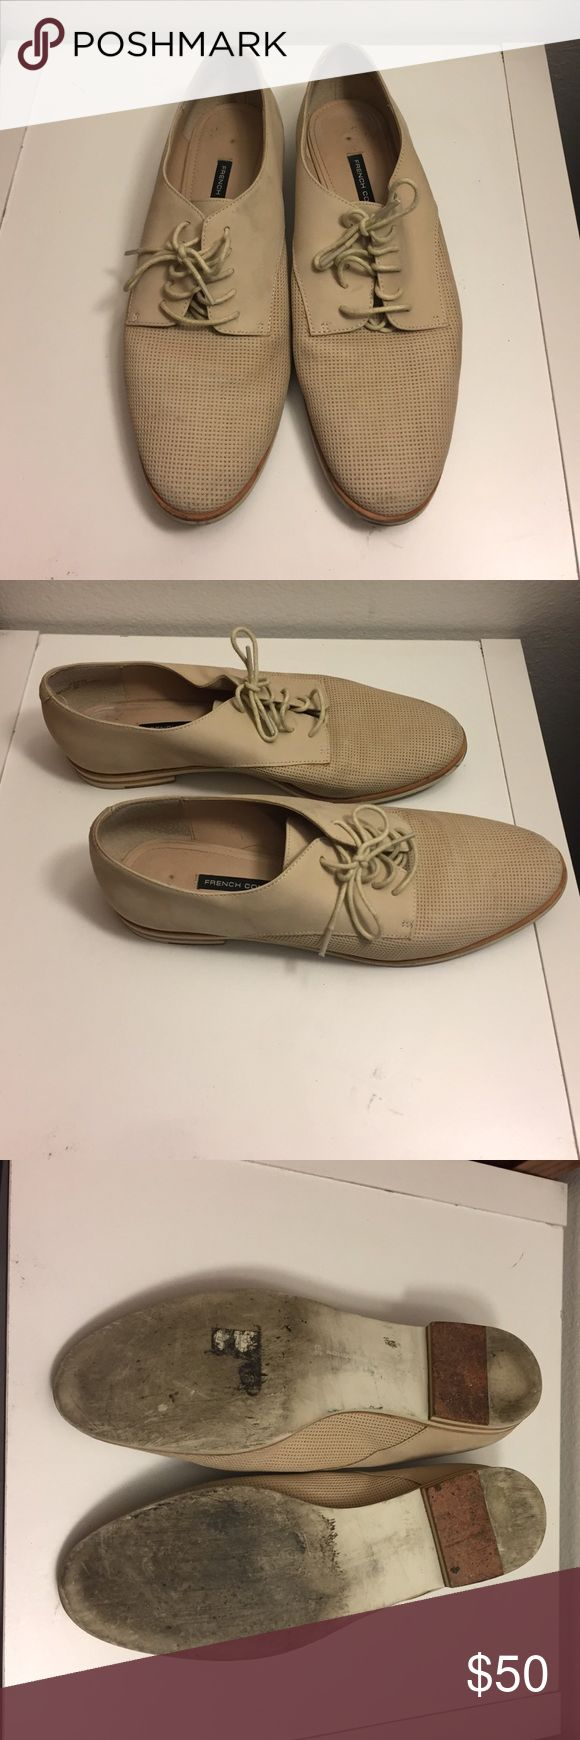 French Connection Beige Loafers French Connection Beige Loafer in size 9.. These are all leather and in good condition, just need a good cleaning. French Connection Shoes Flats & Loafers